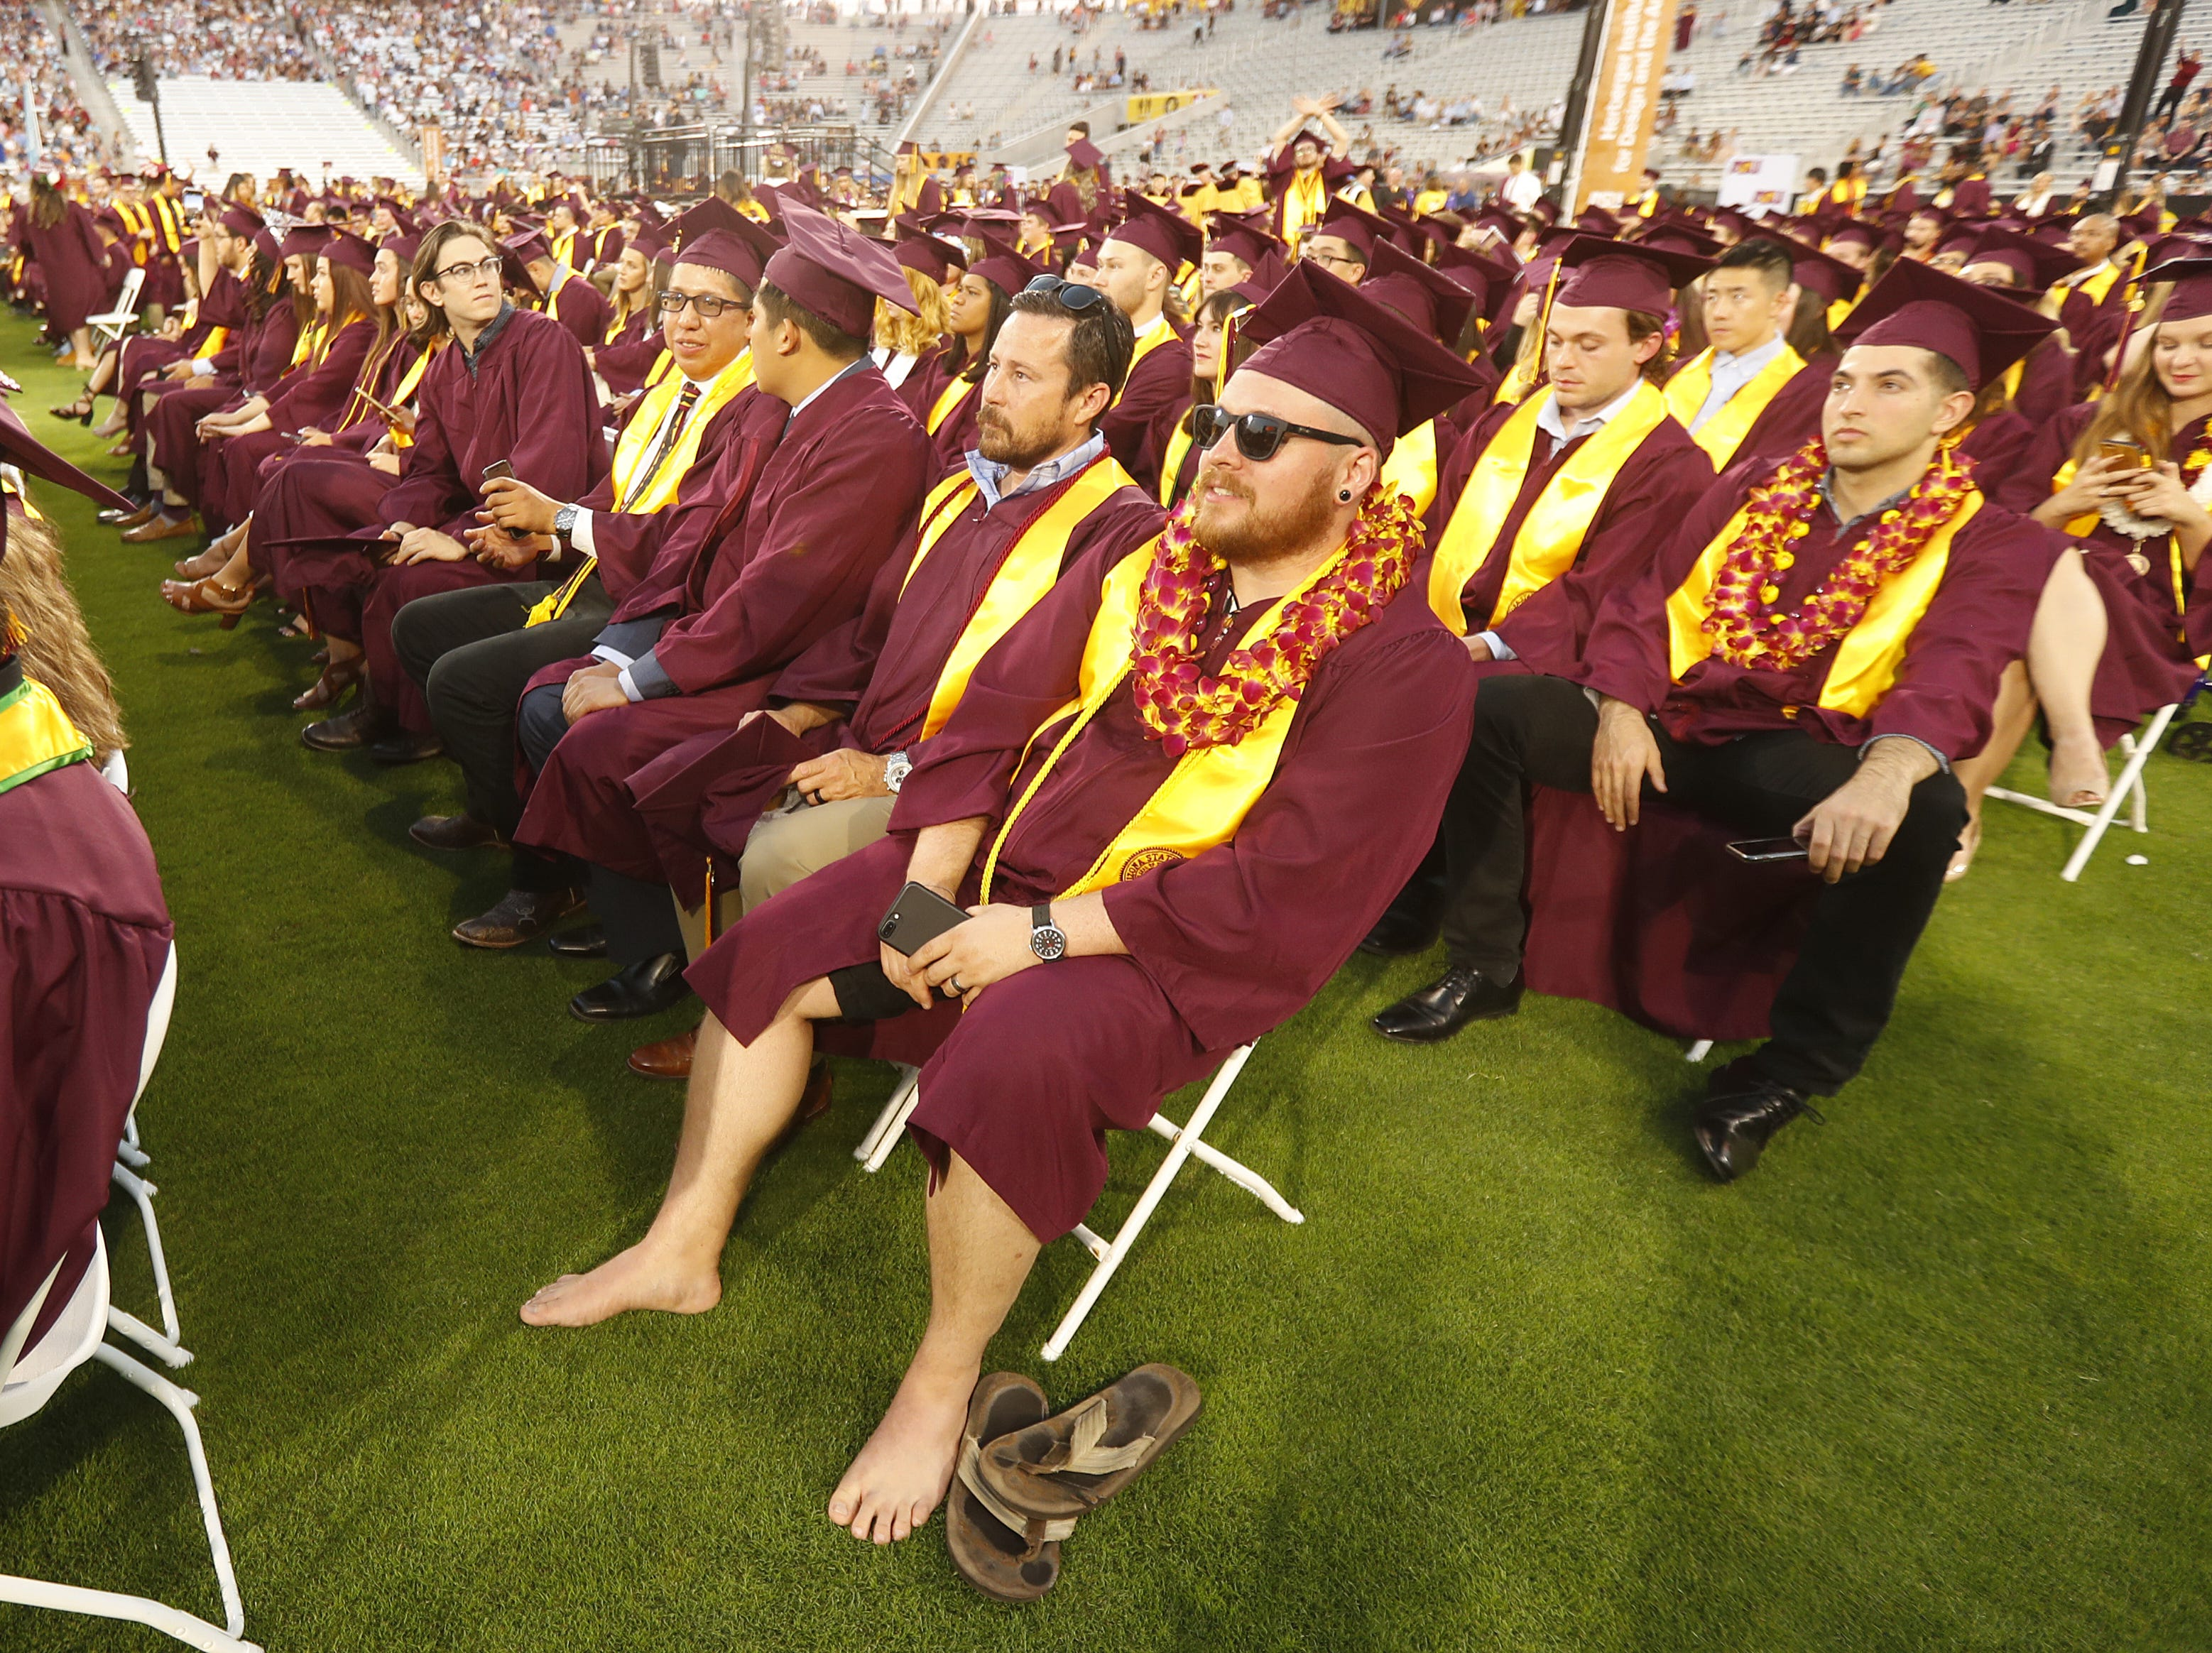 ASU's Matthew Smith gets comfy letting his feet breathe during ASU's Undergraduate Commencement at Sun Devil Stadium in Tempe, Ariz. on May 6, 2019.